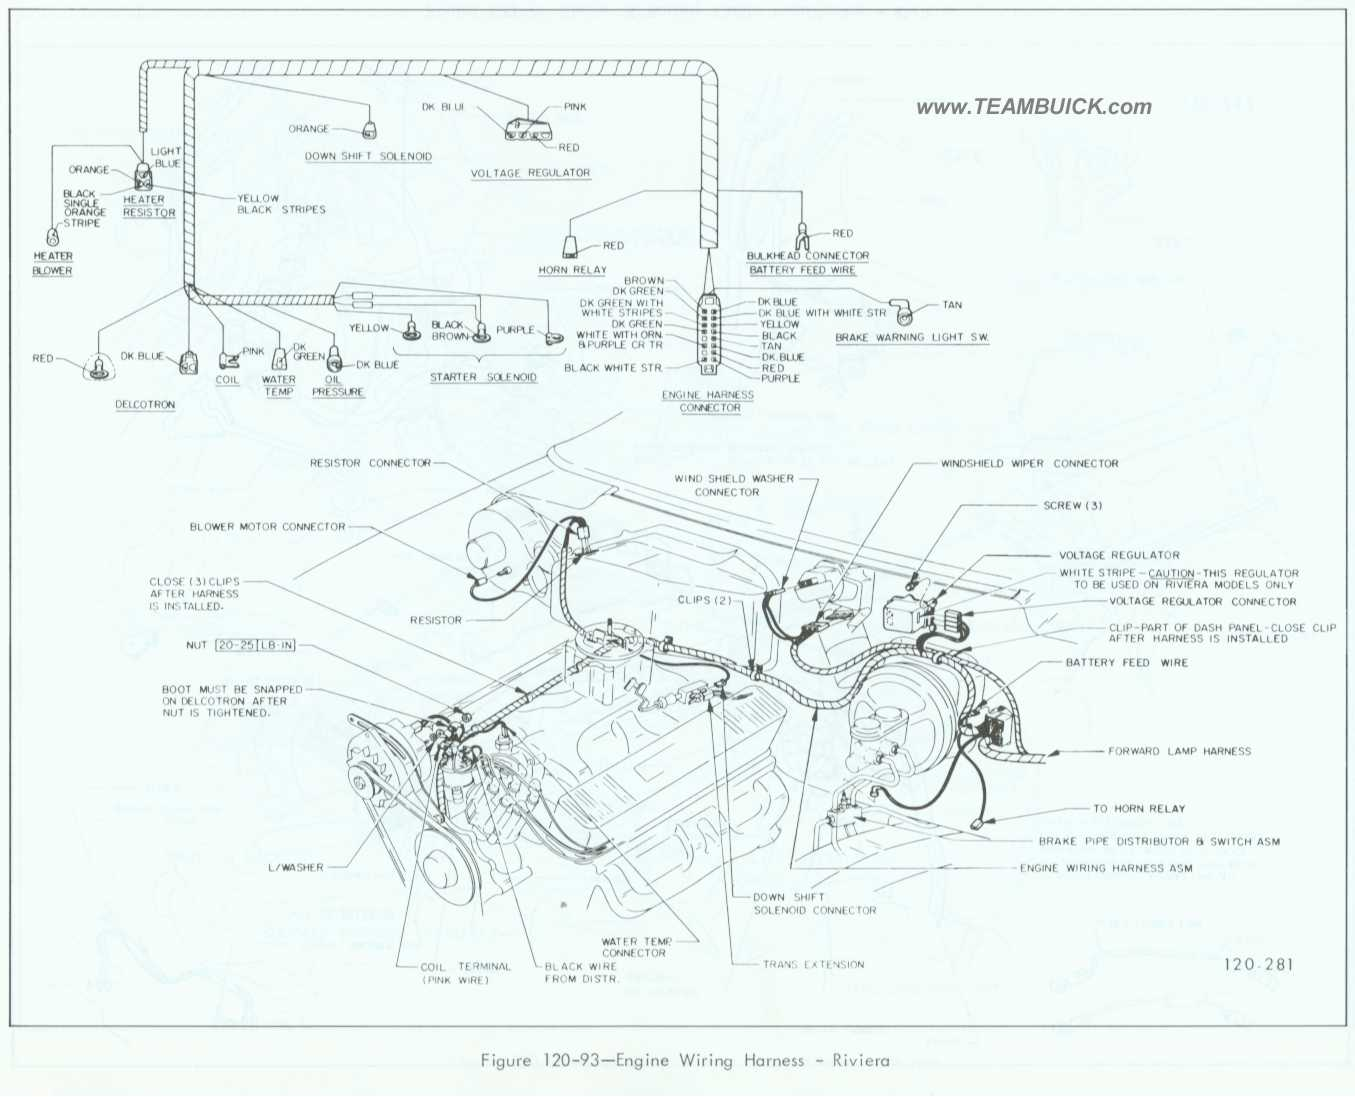 64 buick skylark wire diagram  u2022 wiring diagram for free